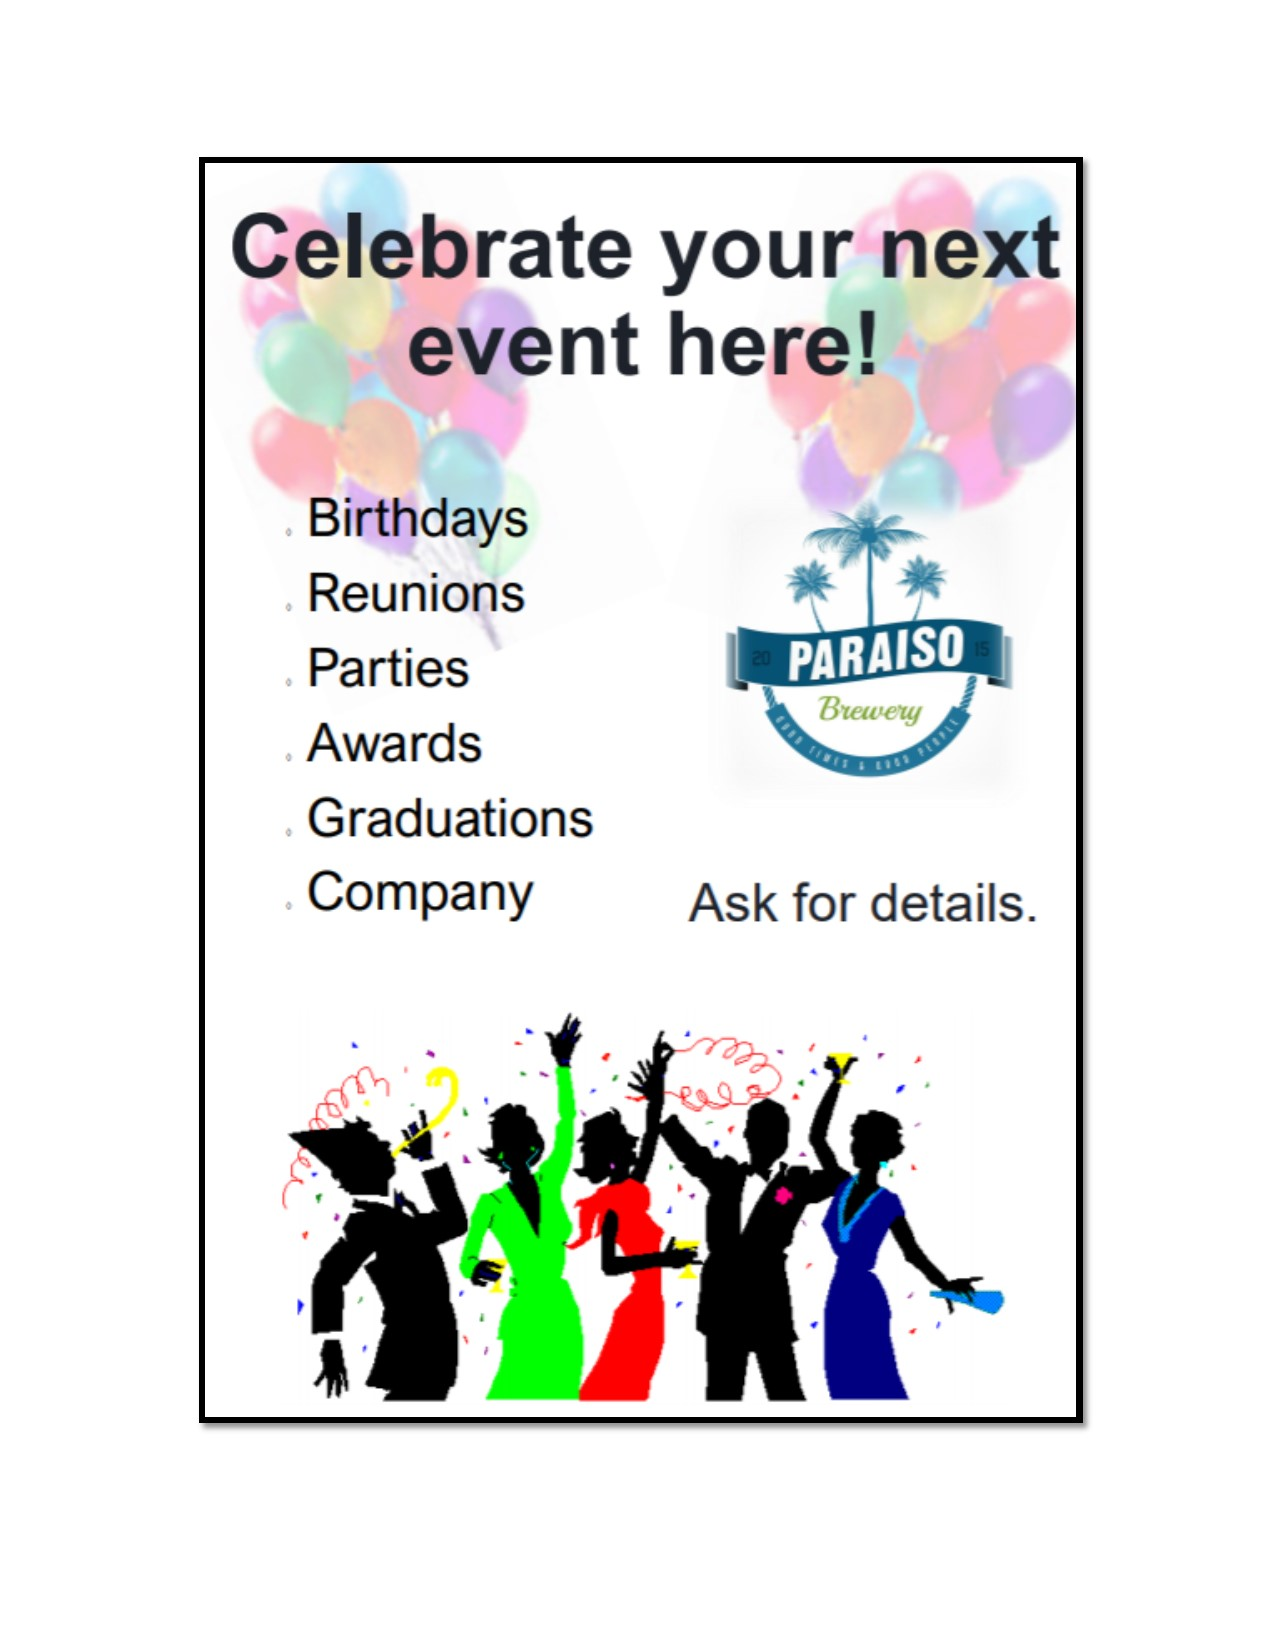 Celebrate your get-together at Paraiso Brewery! Food vendors and DJ vendors can be arranged! Join us for a lot of fun! Our event center is equipped with a projector, a big screen, and endless possibilities!